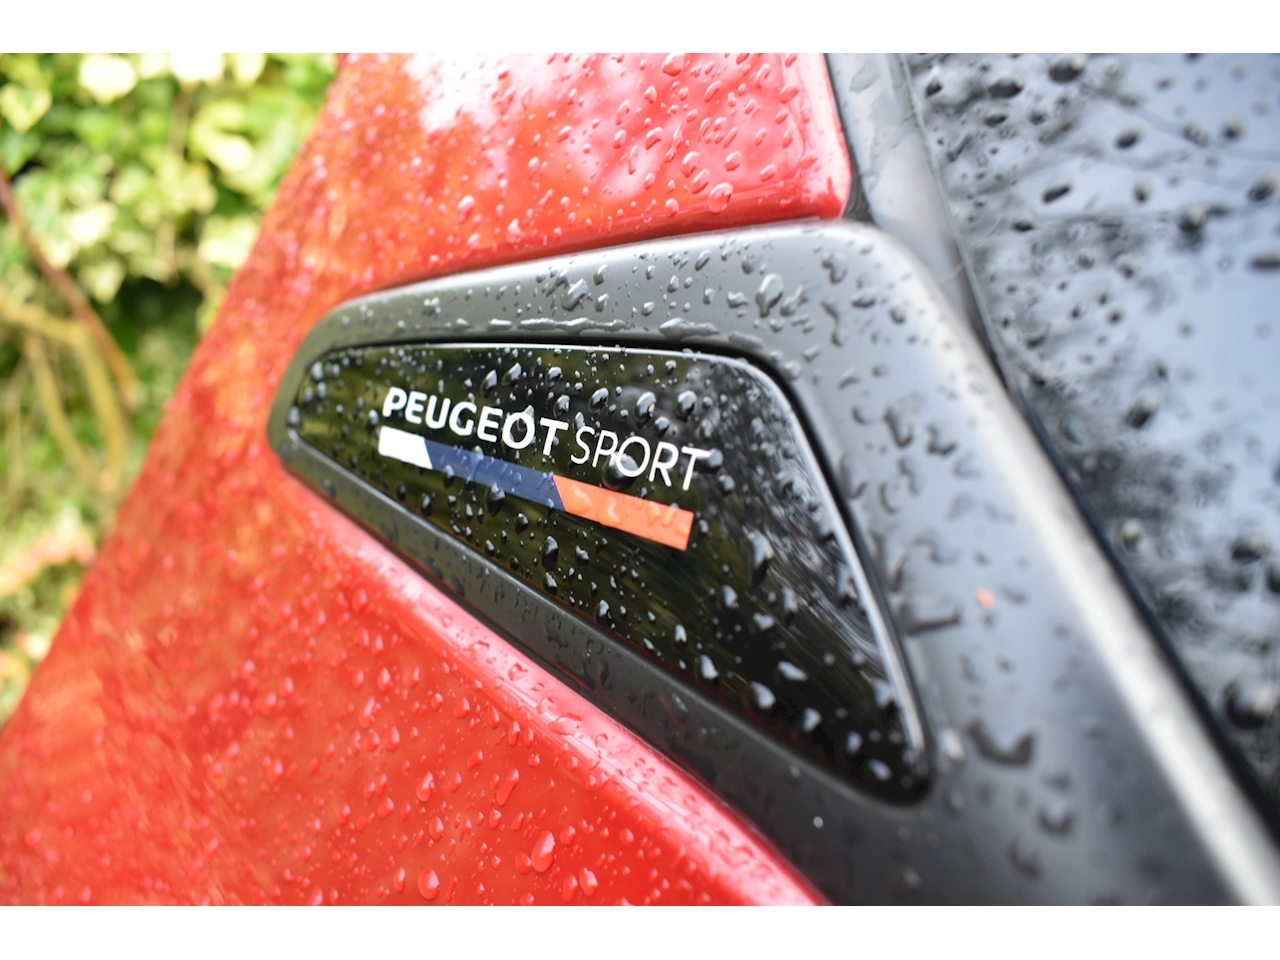 208 Thp Gti Sport Hatchback 1.6 Manual Petrol